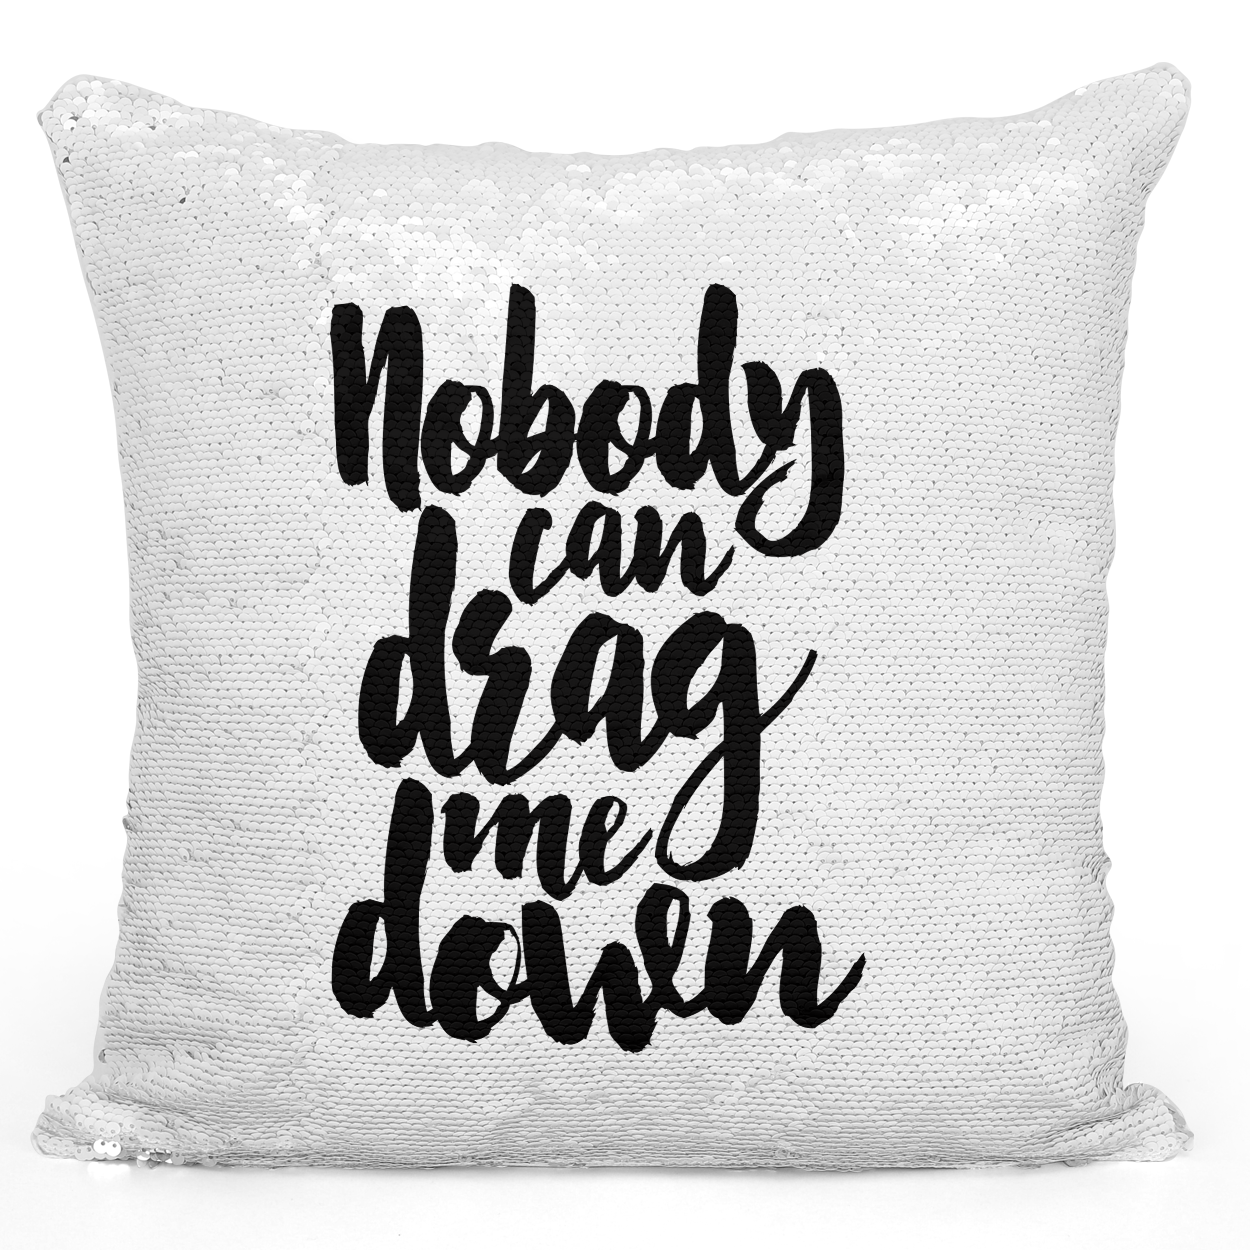 Sequin Pillow Magic Mermaid Throw Pillow Nobody Can Drag Me Down Motivational Pillow - Durable White 16 x 16 inch Square Livingroom Sofa Couch Pillow Loud Universe